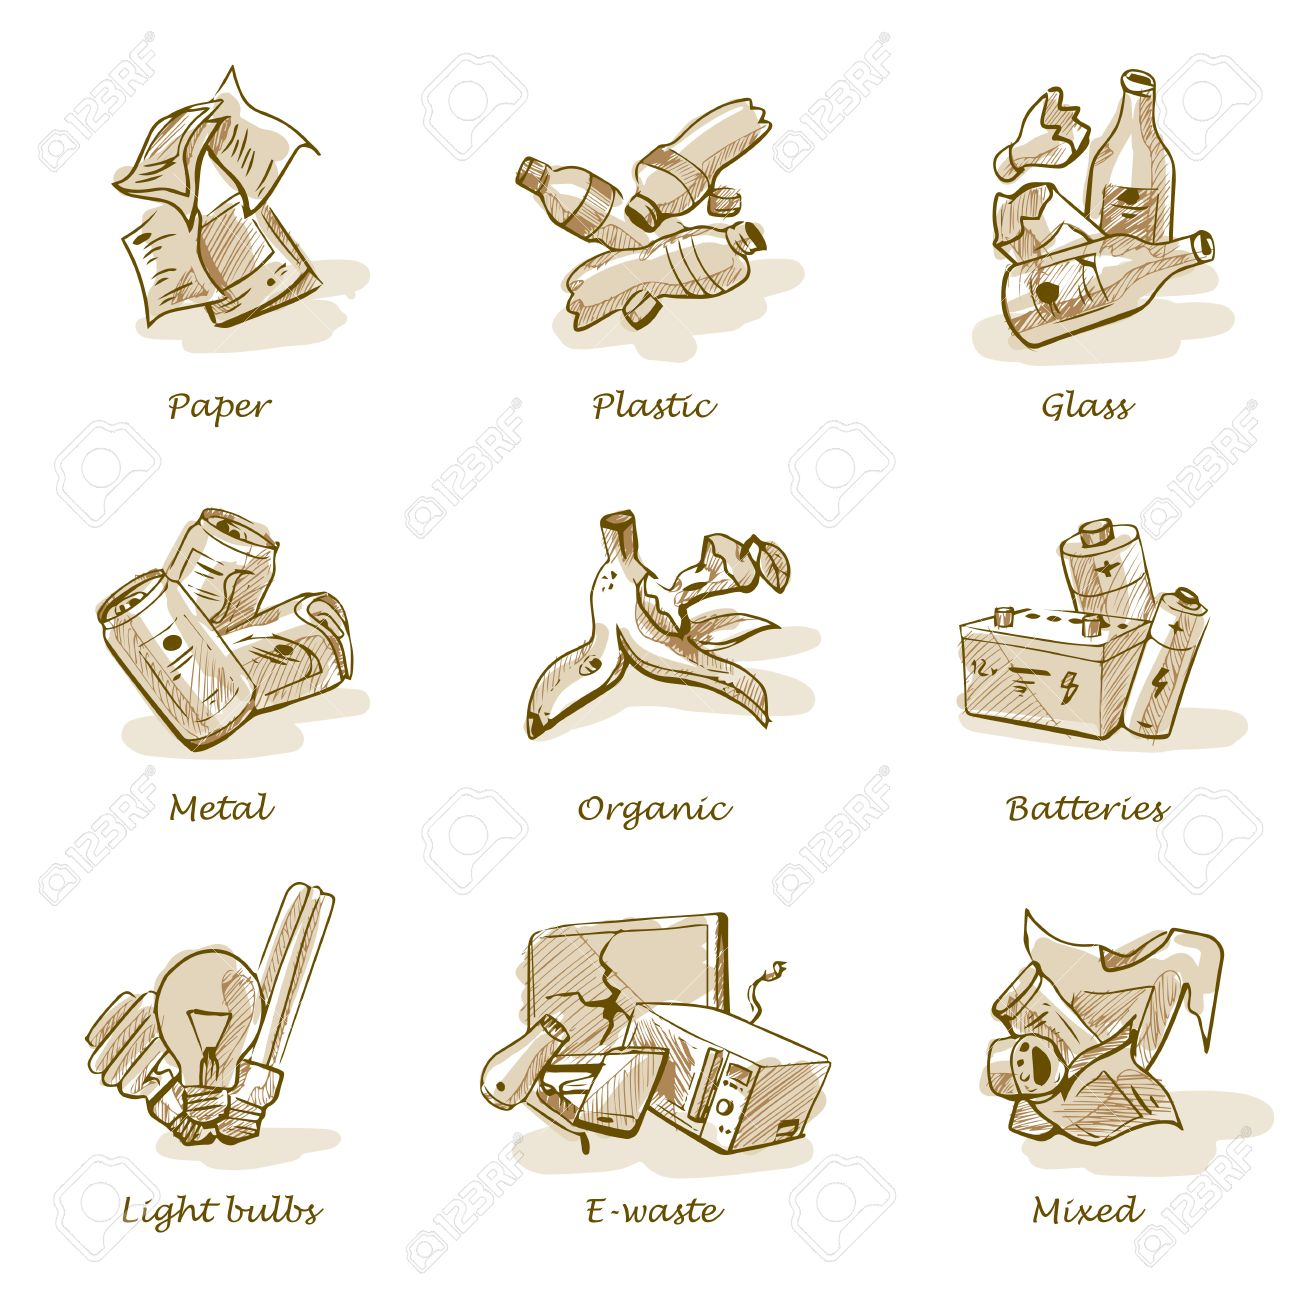 Hand drawn vector illustration sketch of trash categories with organic, paper, plastic, glass, metal, e-waste, batteries, light bulbs and mixed waste. Waste types segregation recycling management concept. - 54031478